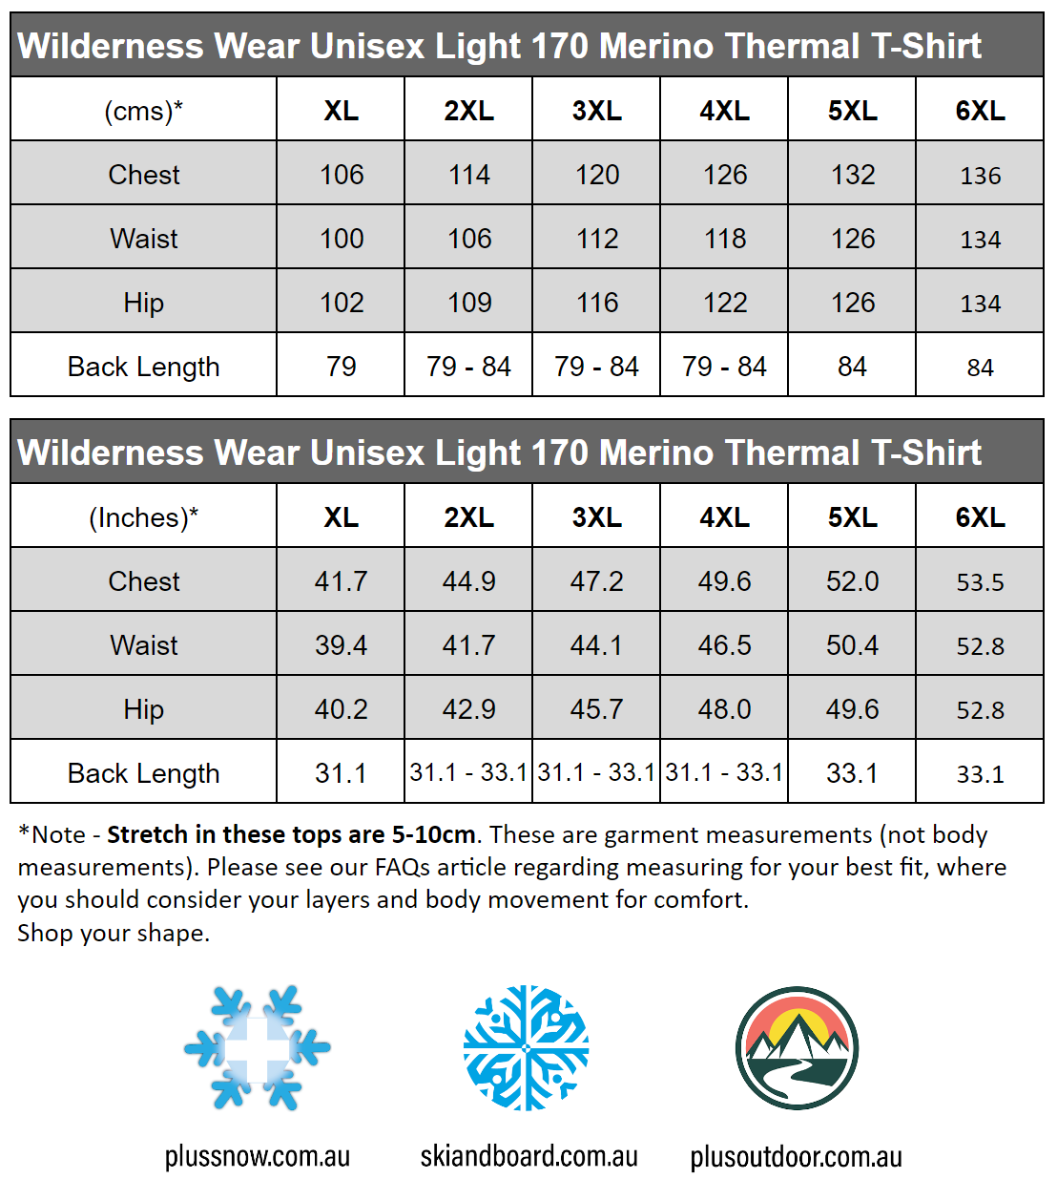 Wilderness Wear Mens Plus Size Light Merino 170 T-Shirt Black size chart